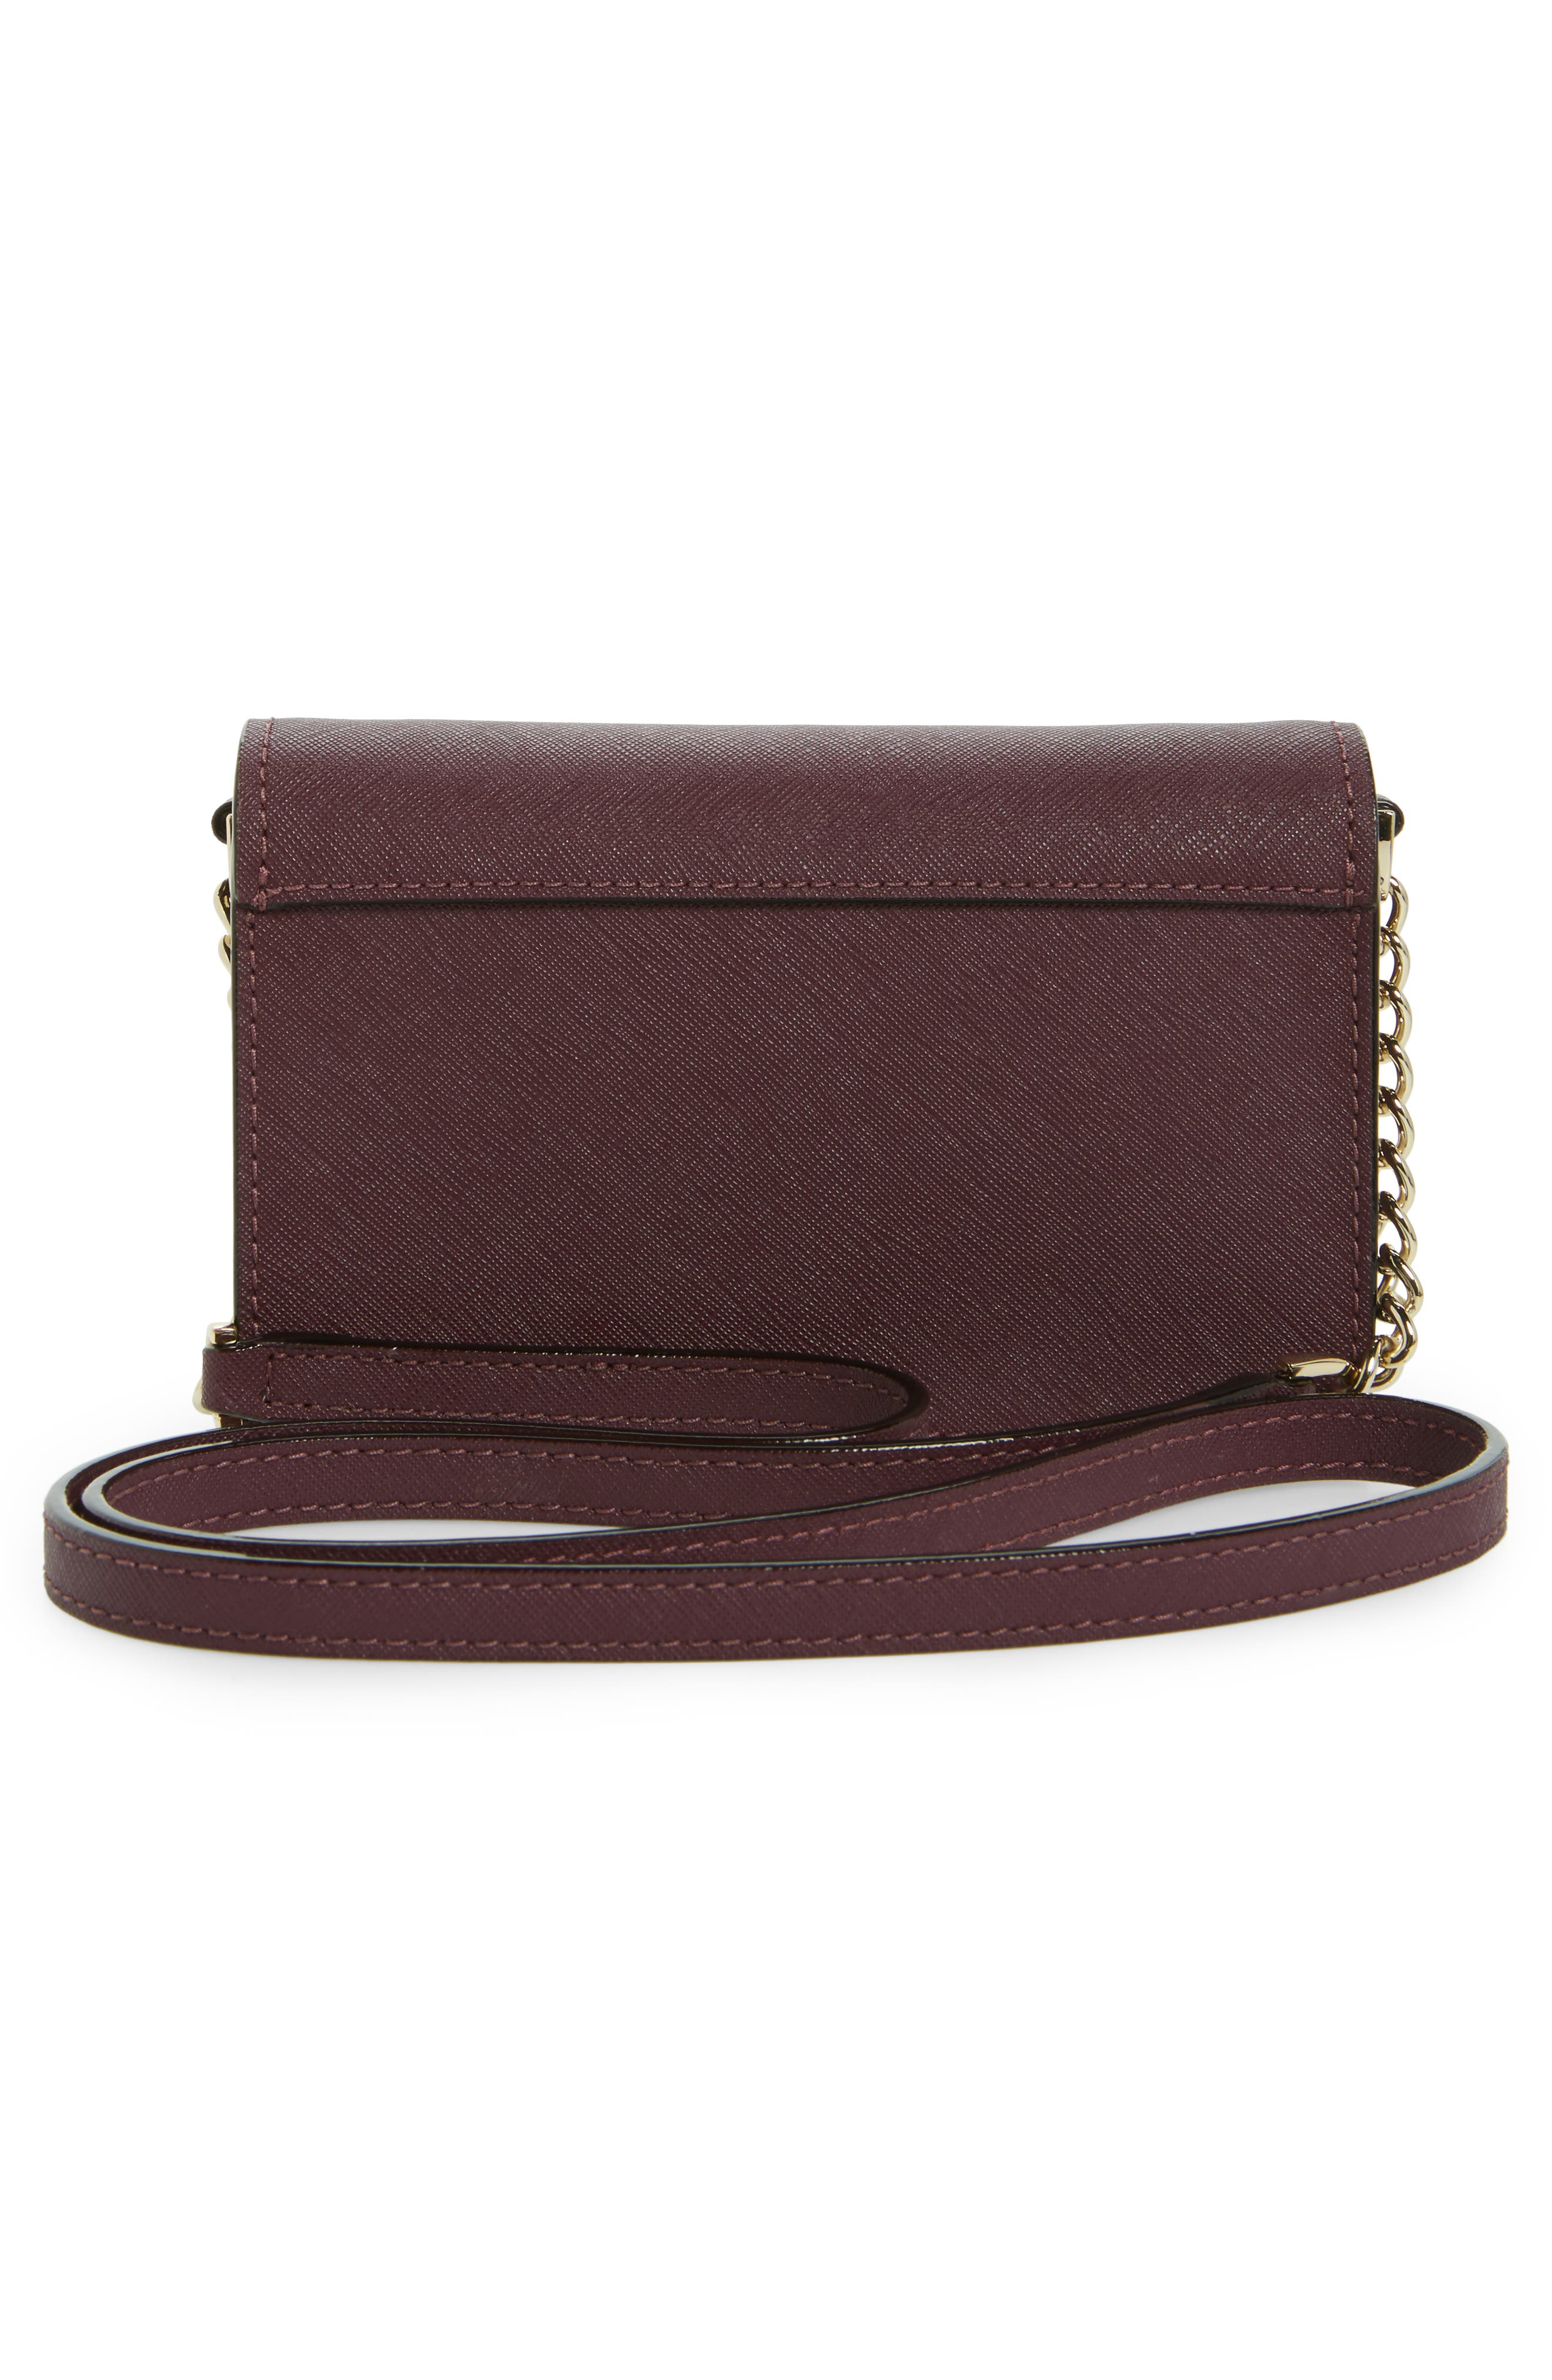 Alternate Image 2  - kate spade new york cameron street - shreya leather crossbody bag